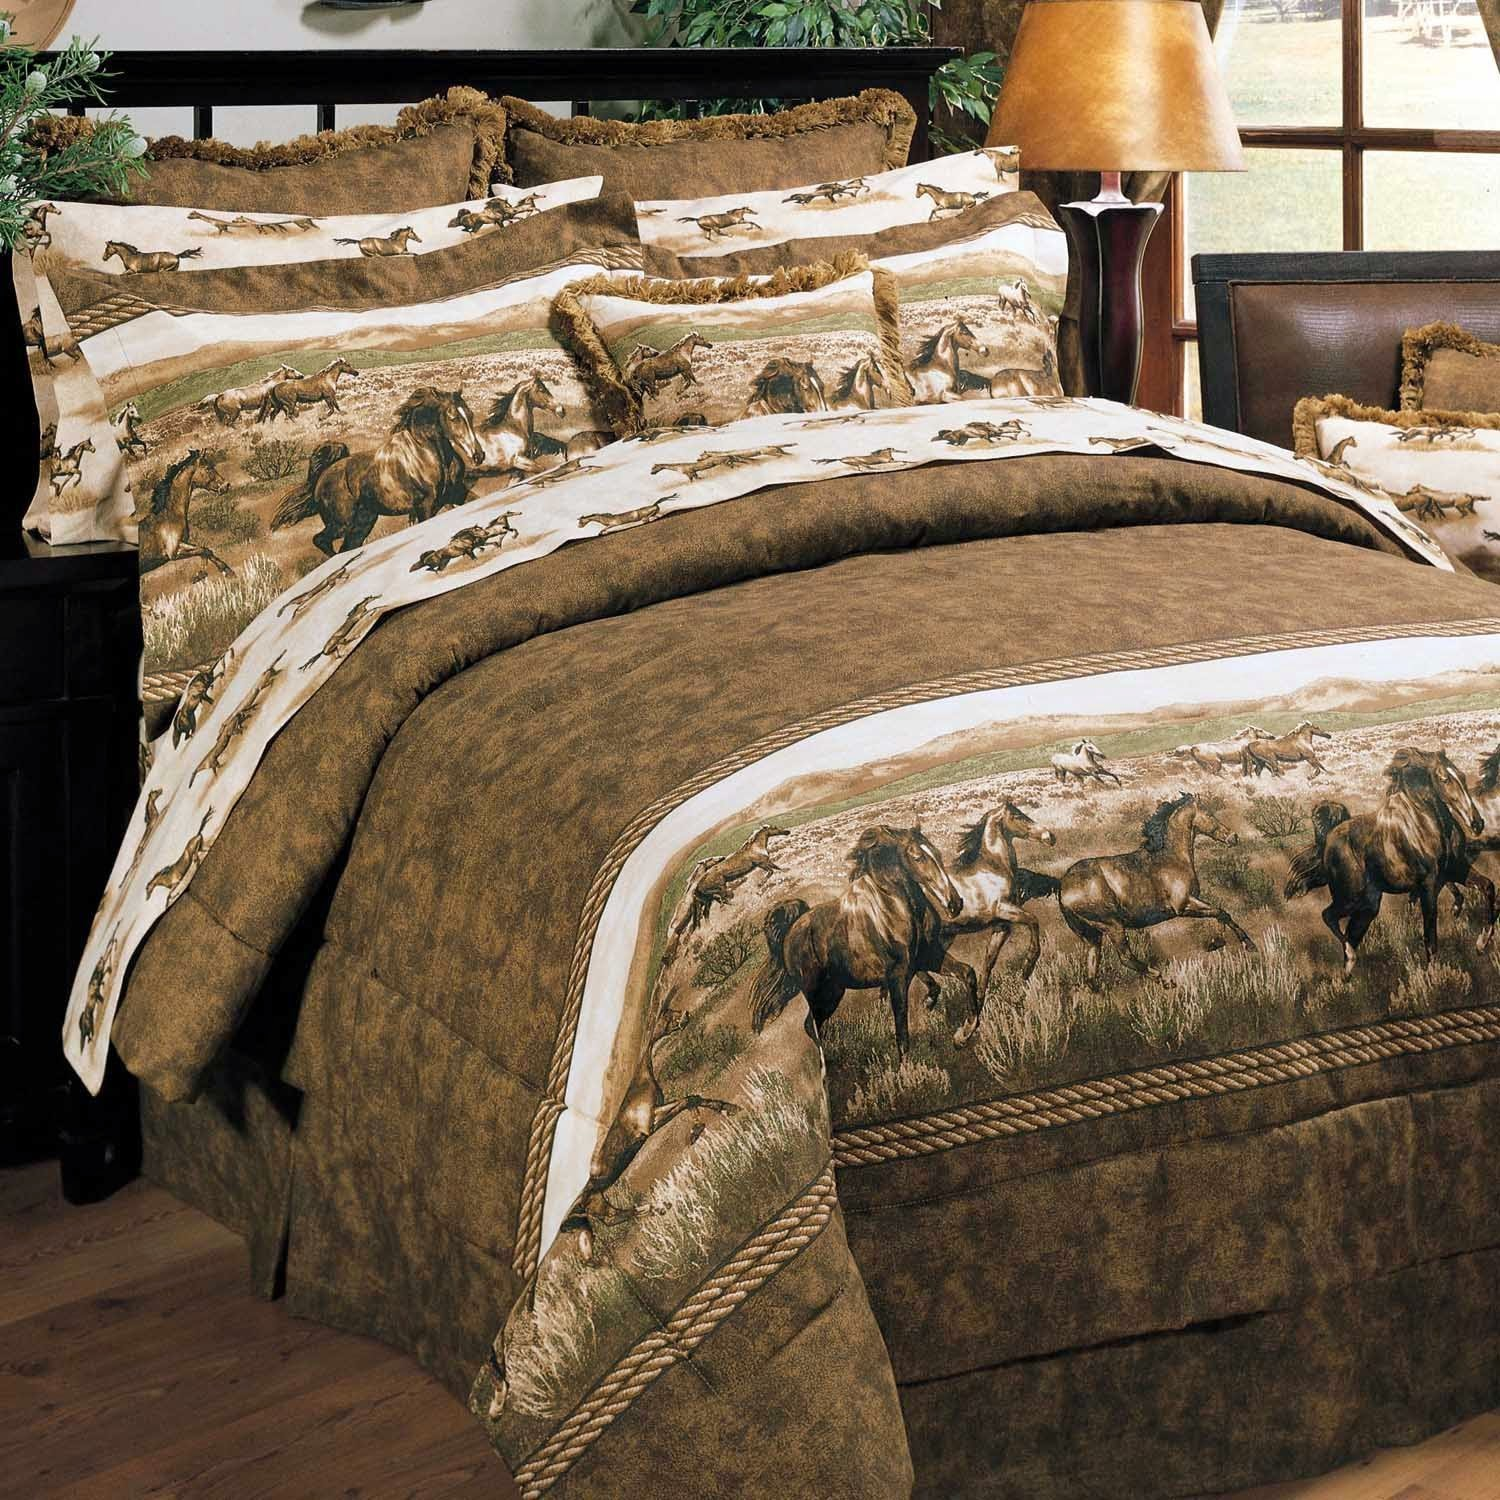 Bedroom Decor Ideas and Designs: Top Ten Equestrian and ...